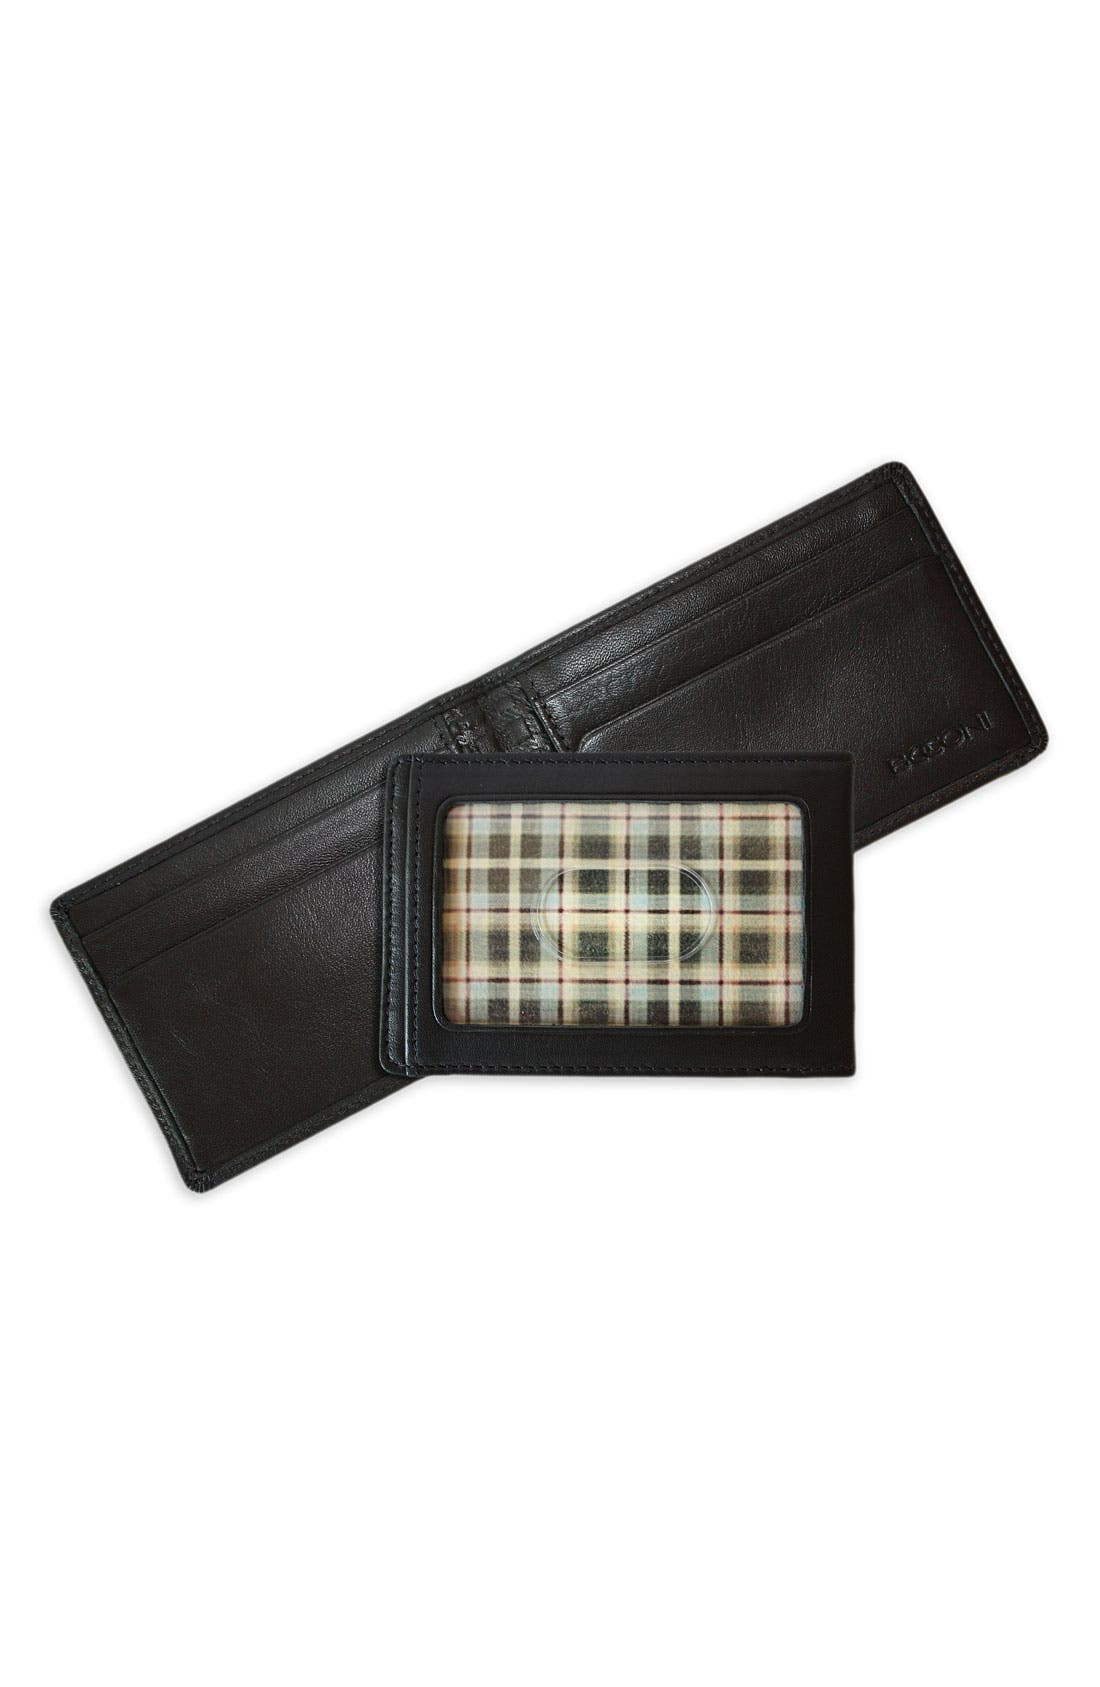 Alternate Image 1 Selected - Boconi Leather Money Clip Wallet